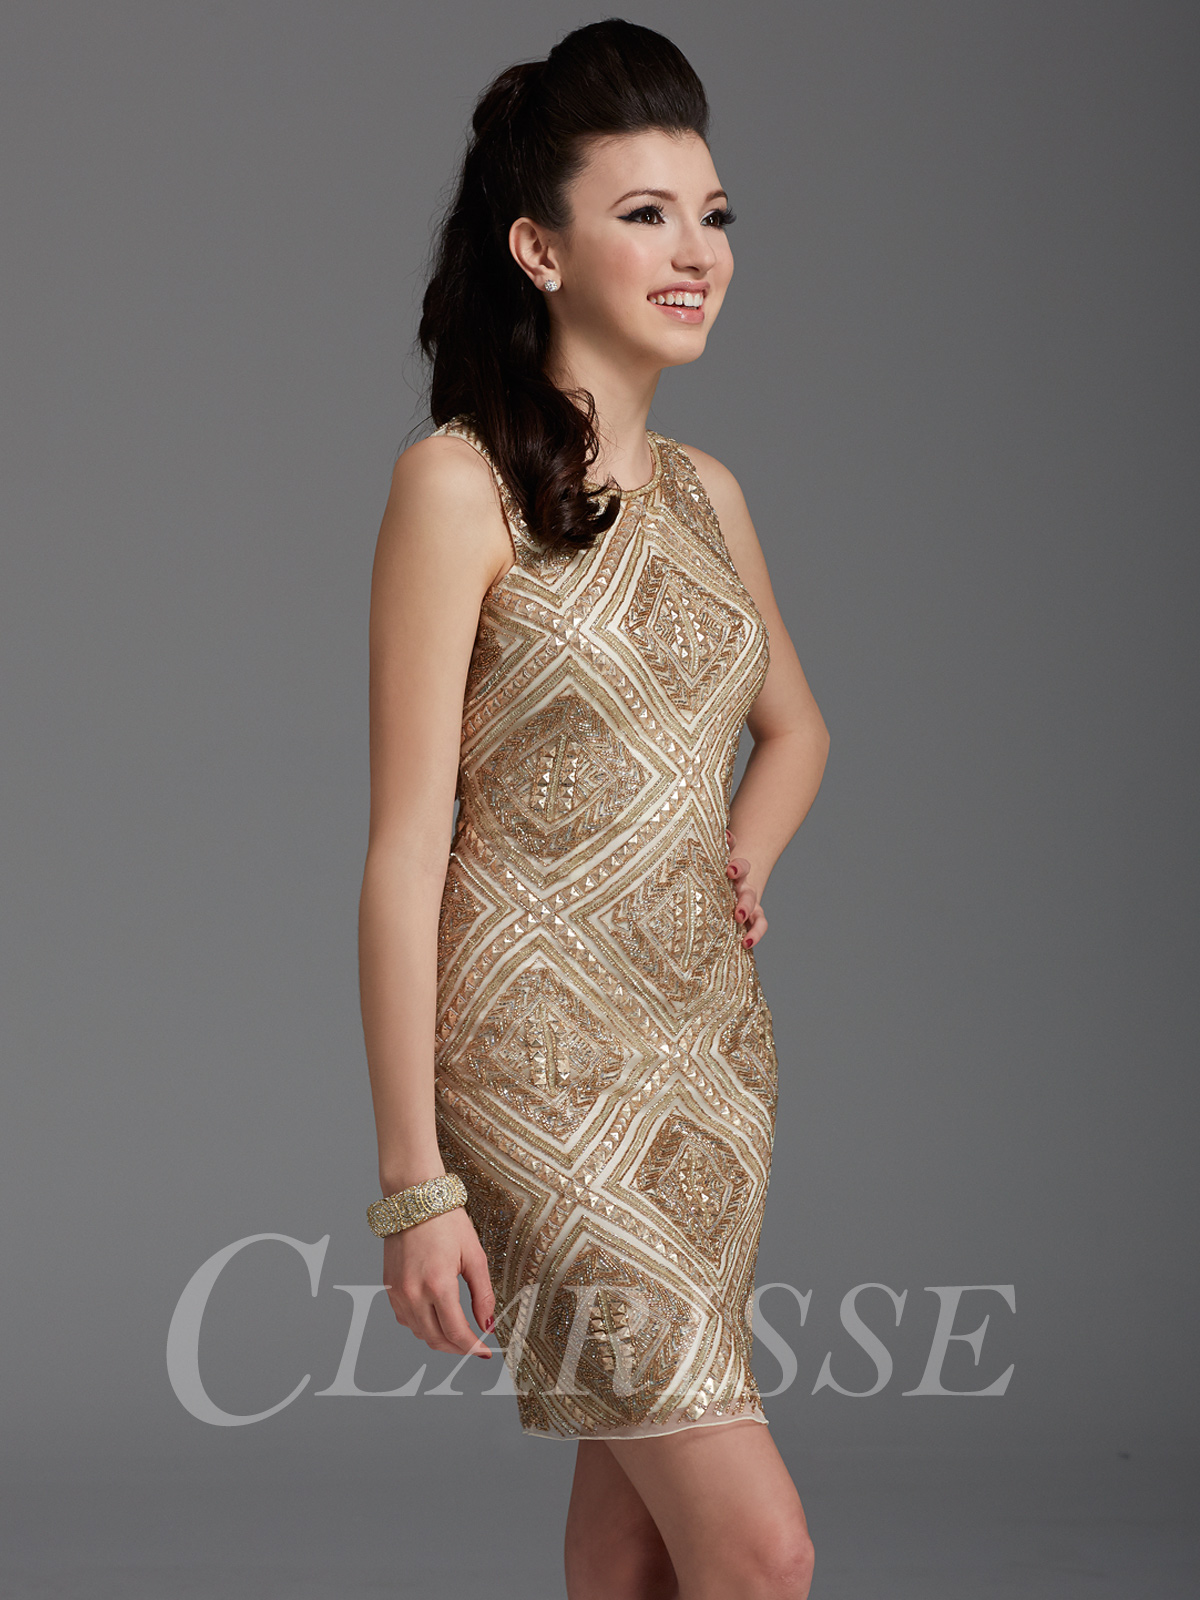 Clarisse Party Dress 2928 | Promgirl.net